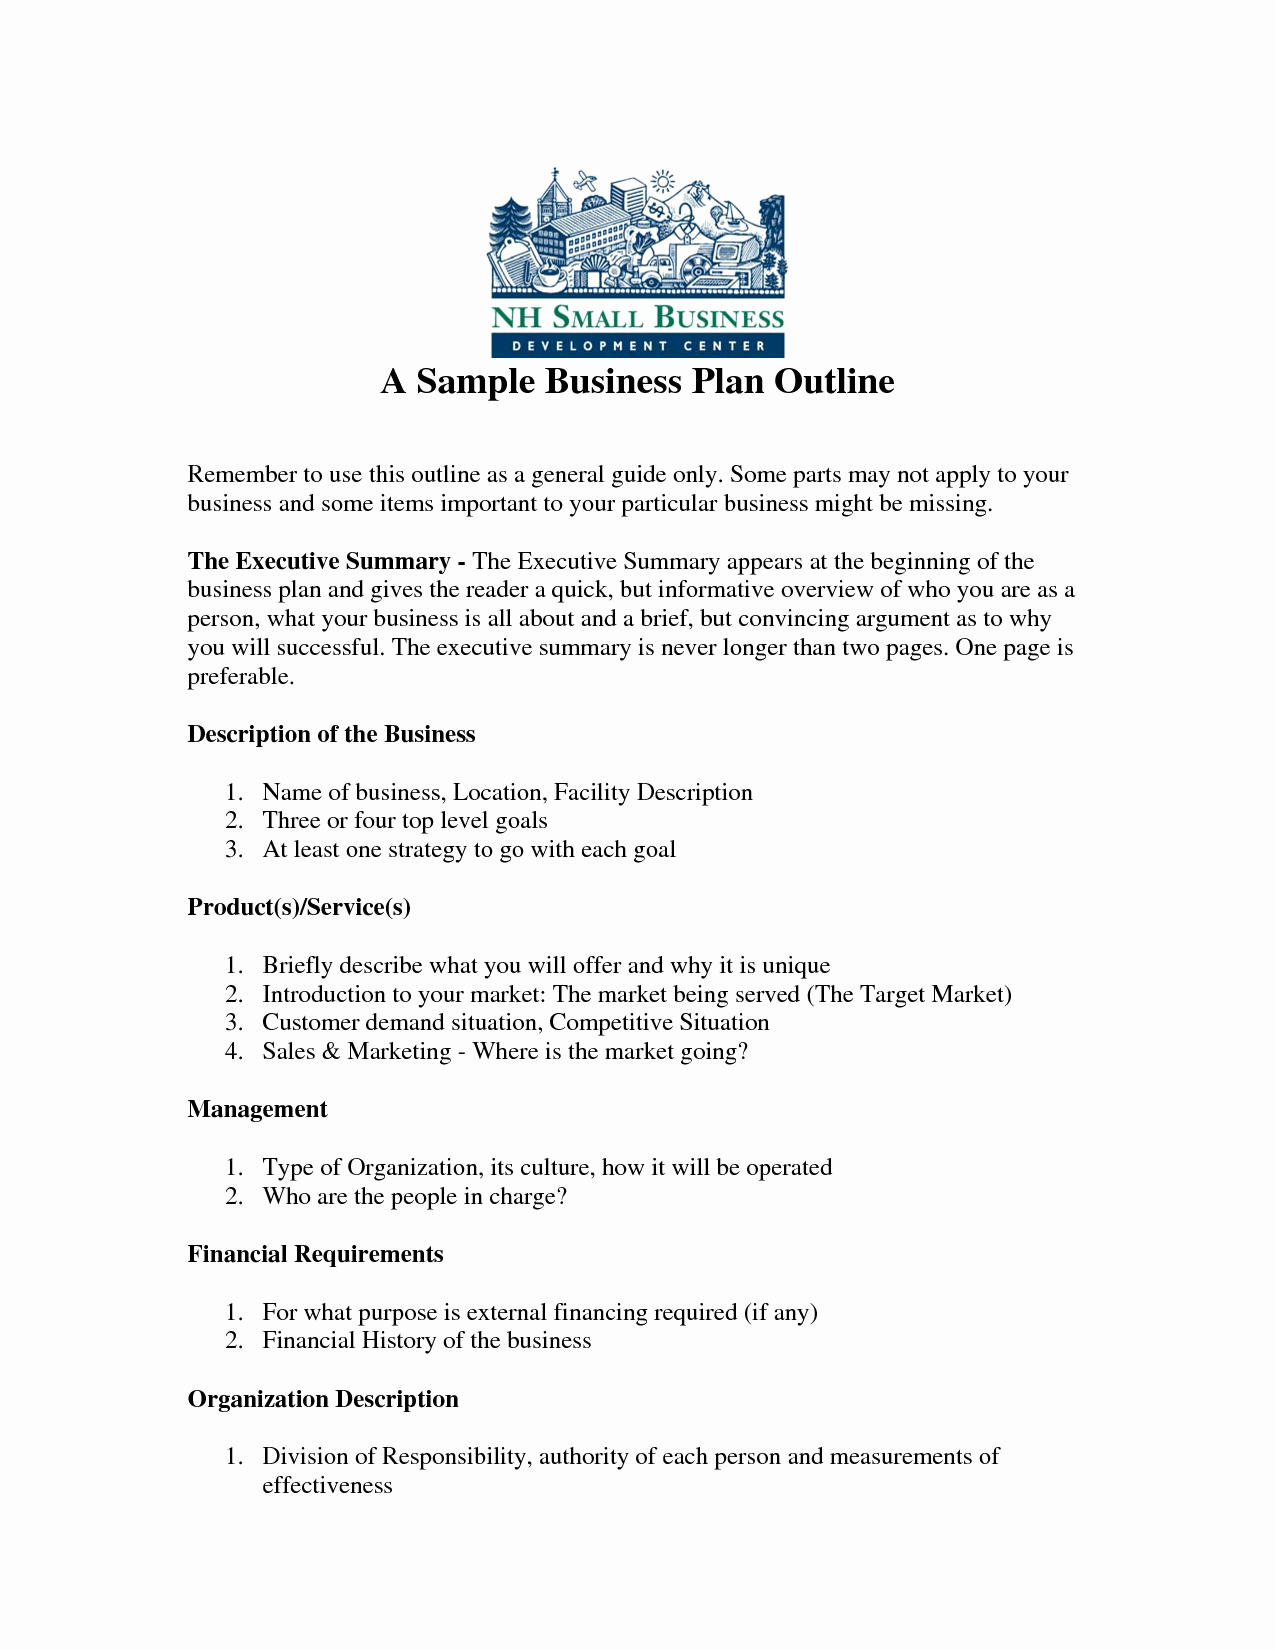 Sba Business Plan Template Lovely Free Printable Business Plan Sample form Generic